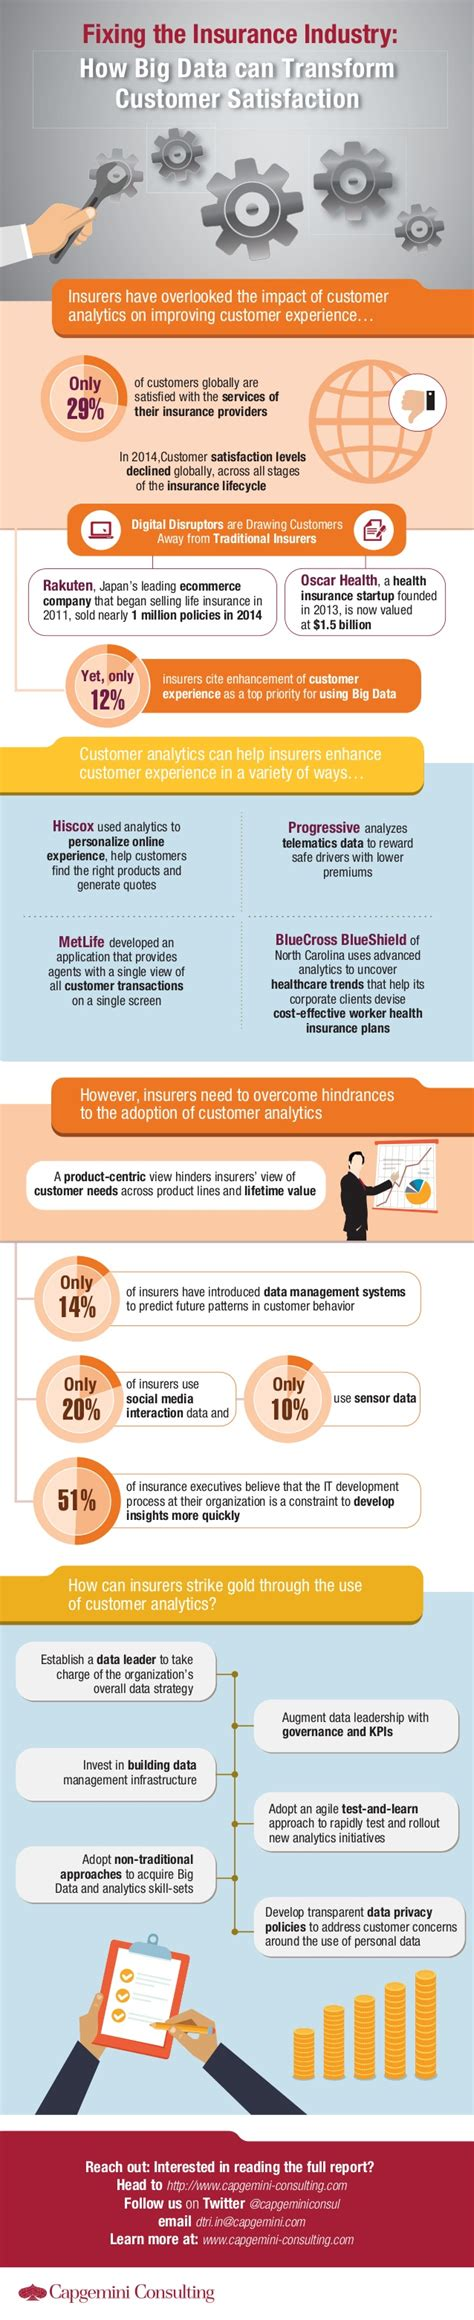 Infographic Fixing The Insurance Industry  How Big Data